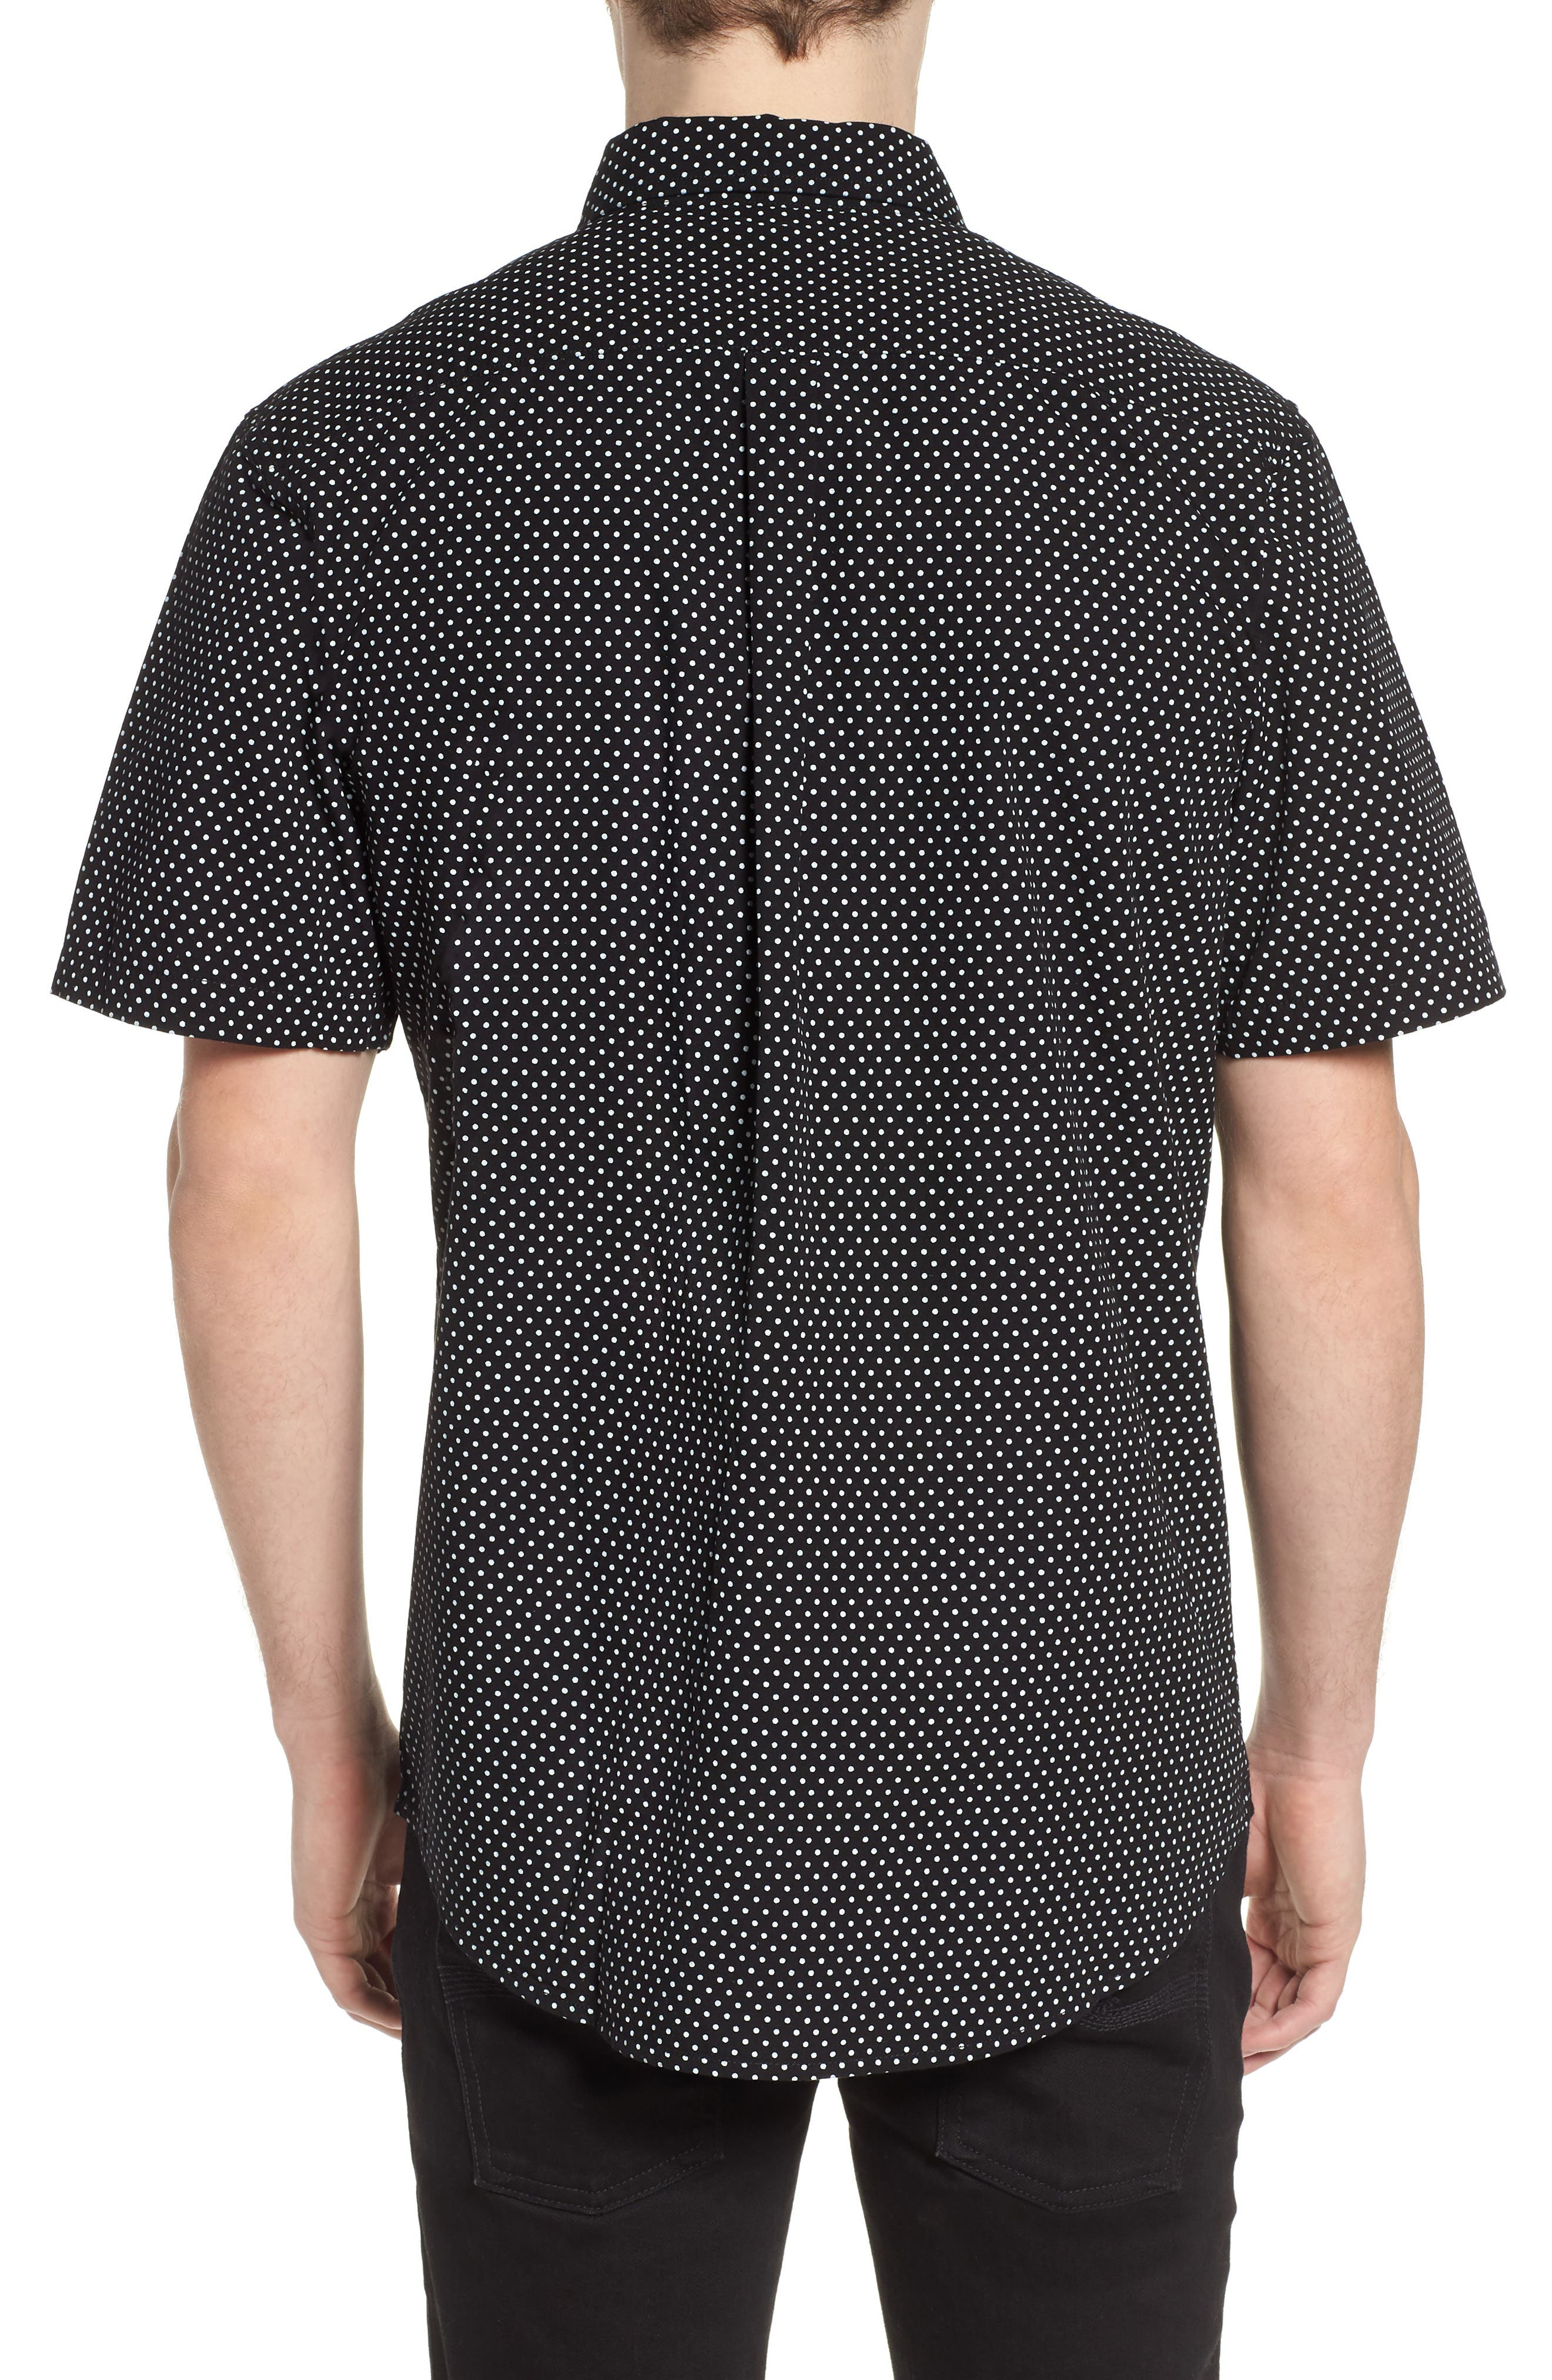 Brozwell Short Sleeve Shirt,                             Alternate thumbnail 2, color,                             Black Multi